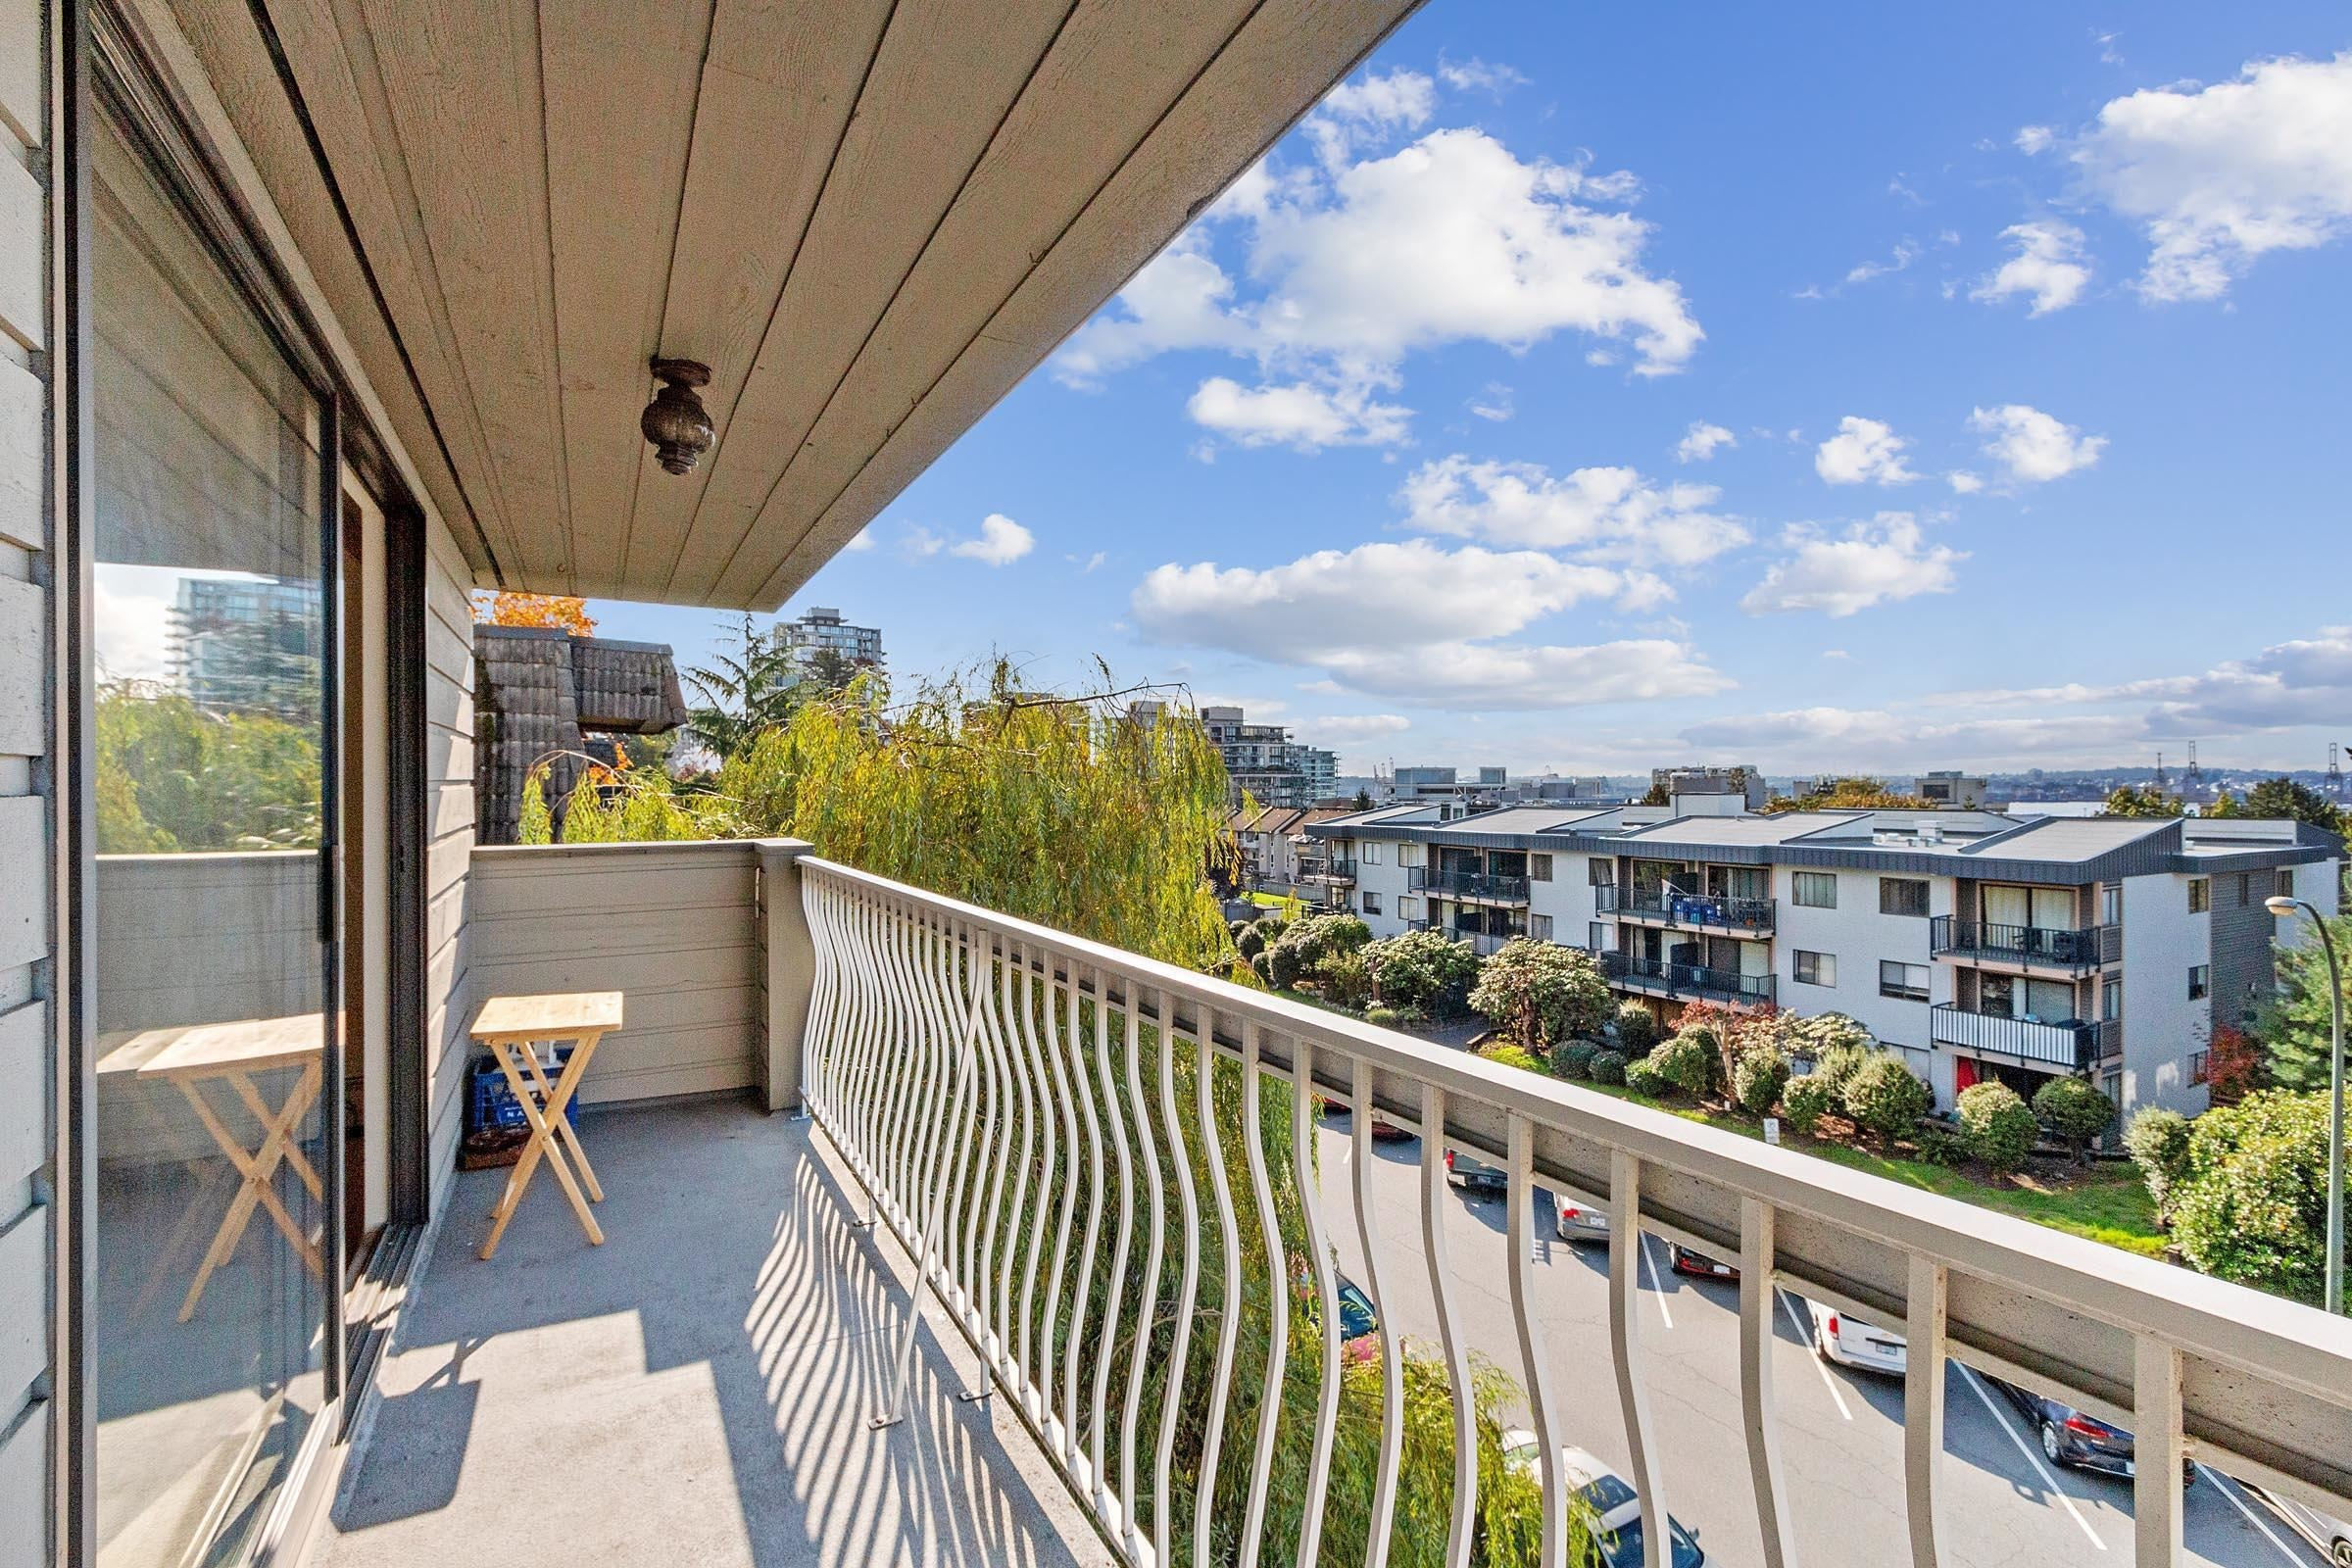 301 264 W 2ND STREET - Lower Lonsdale Apartment/Condo for sale, 2 Bedrooms (R2625527) - #16